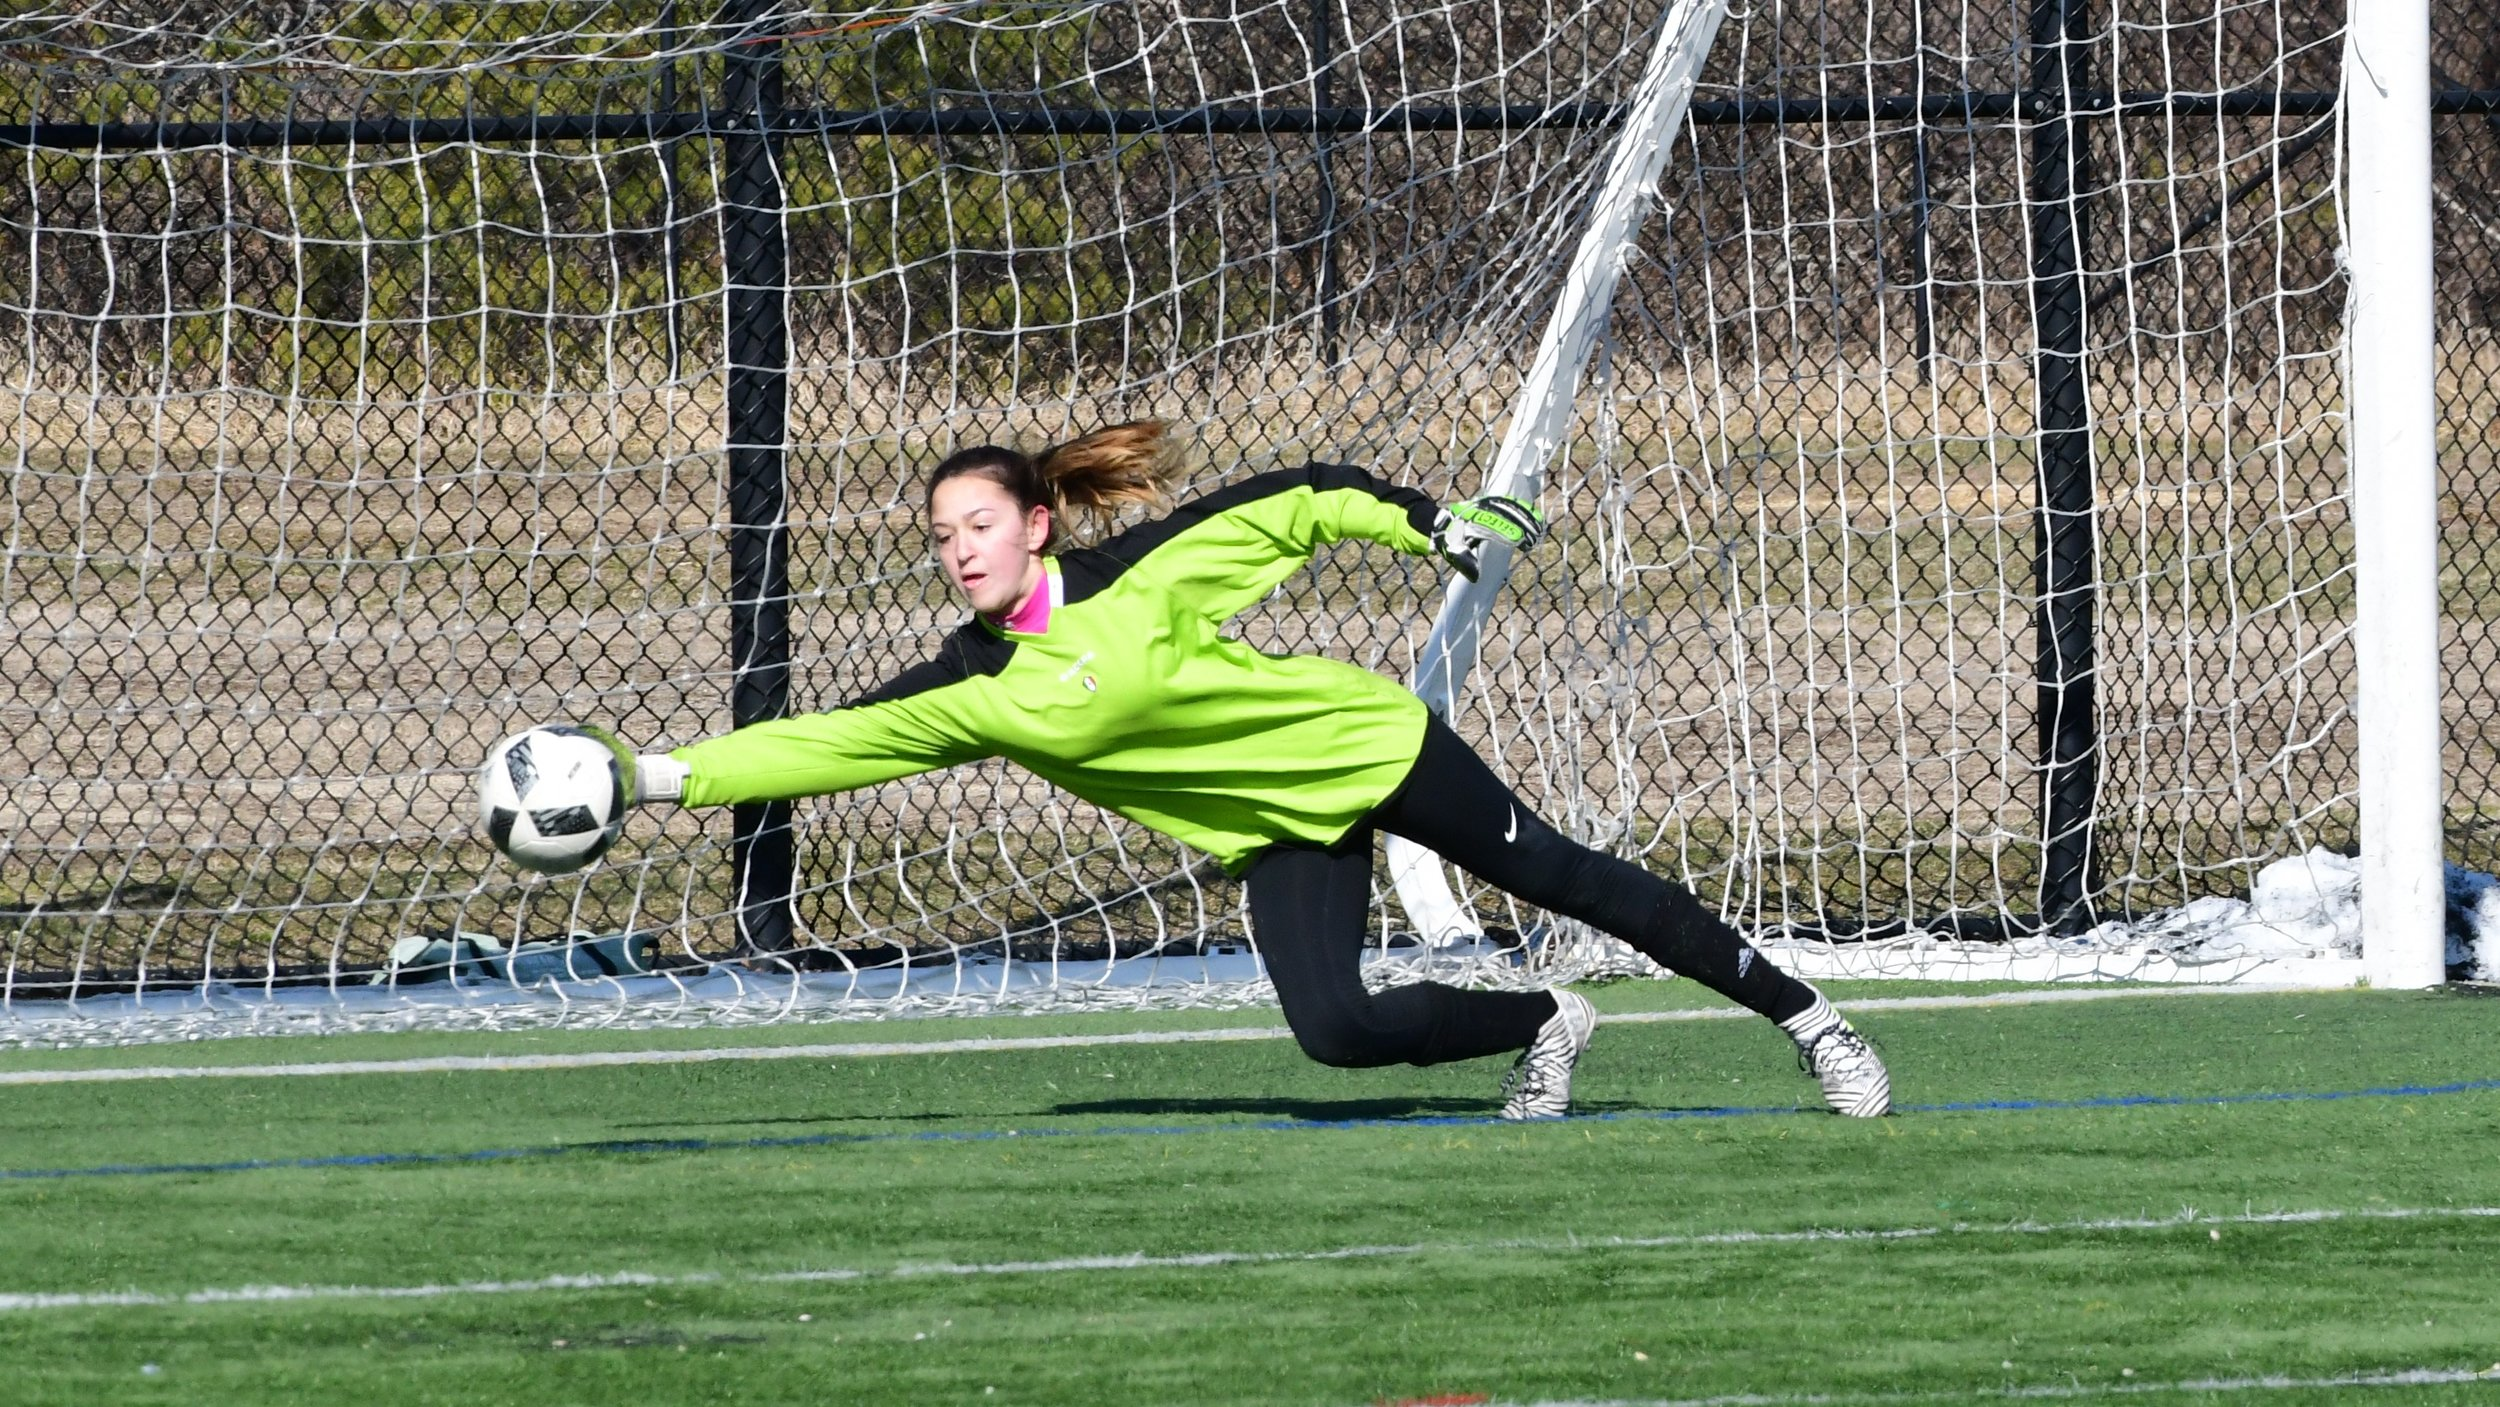 Free Goalkeeper Training - Commack Soccer is pleased to announce free goalie training for the upcoming winter season.Learn More ➝